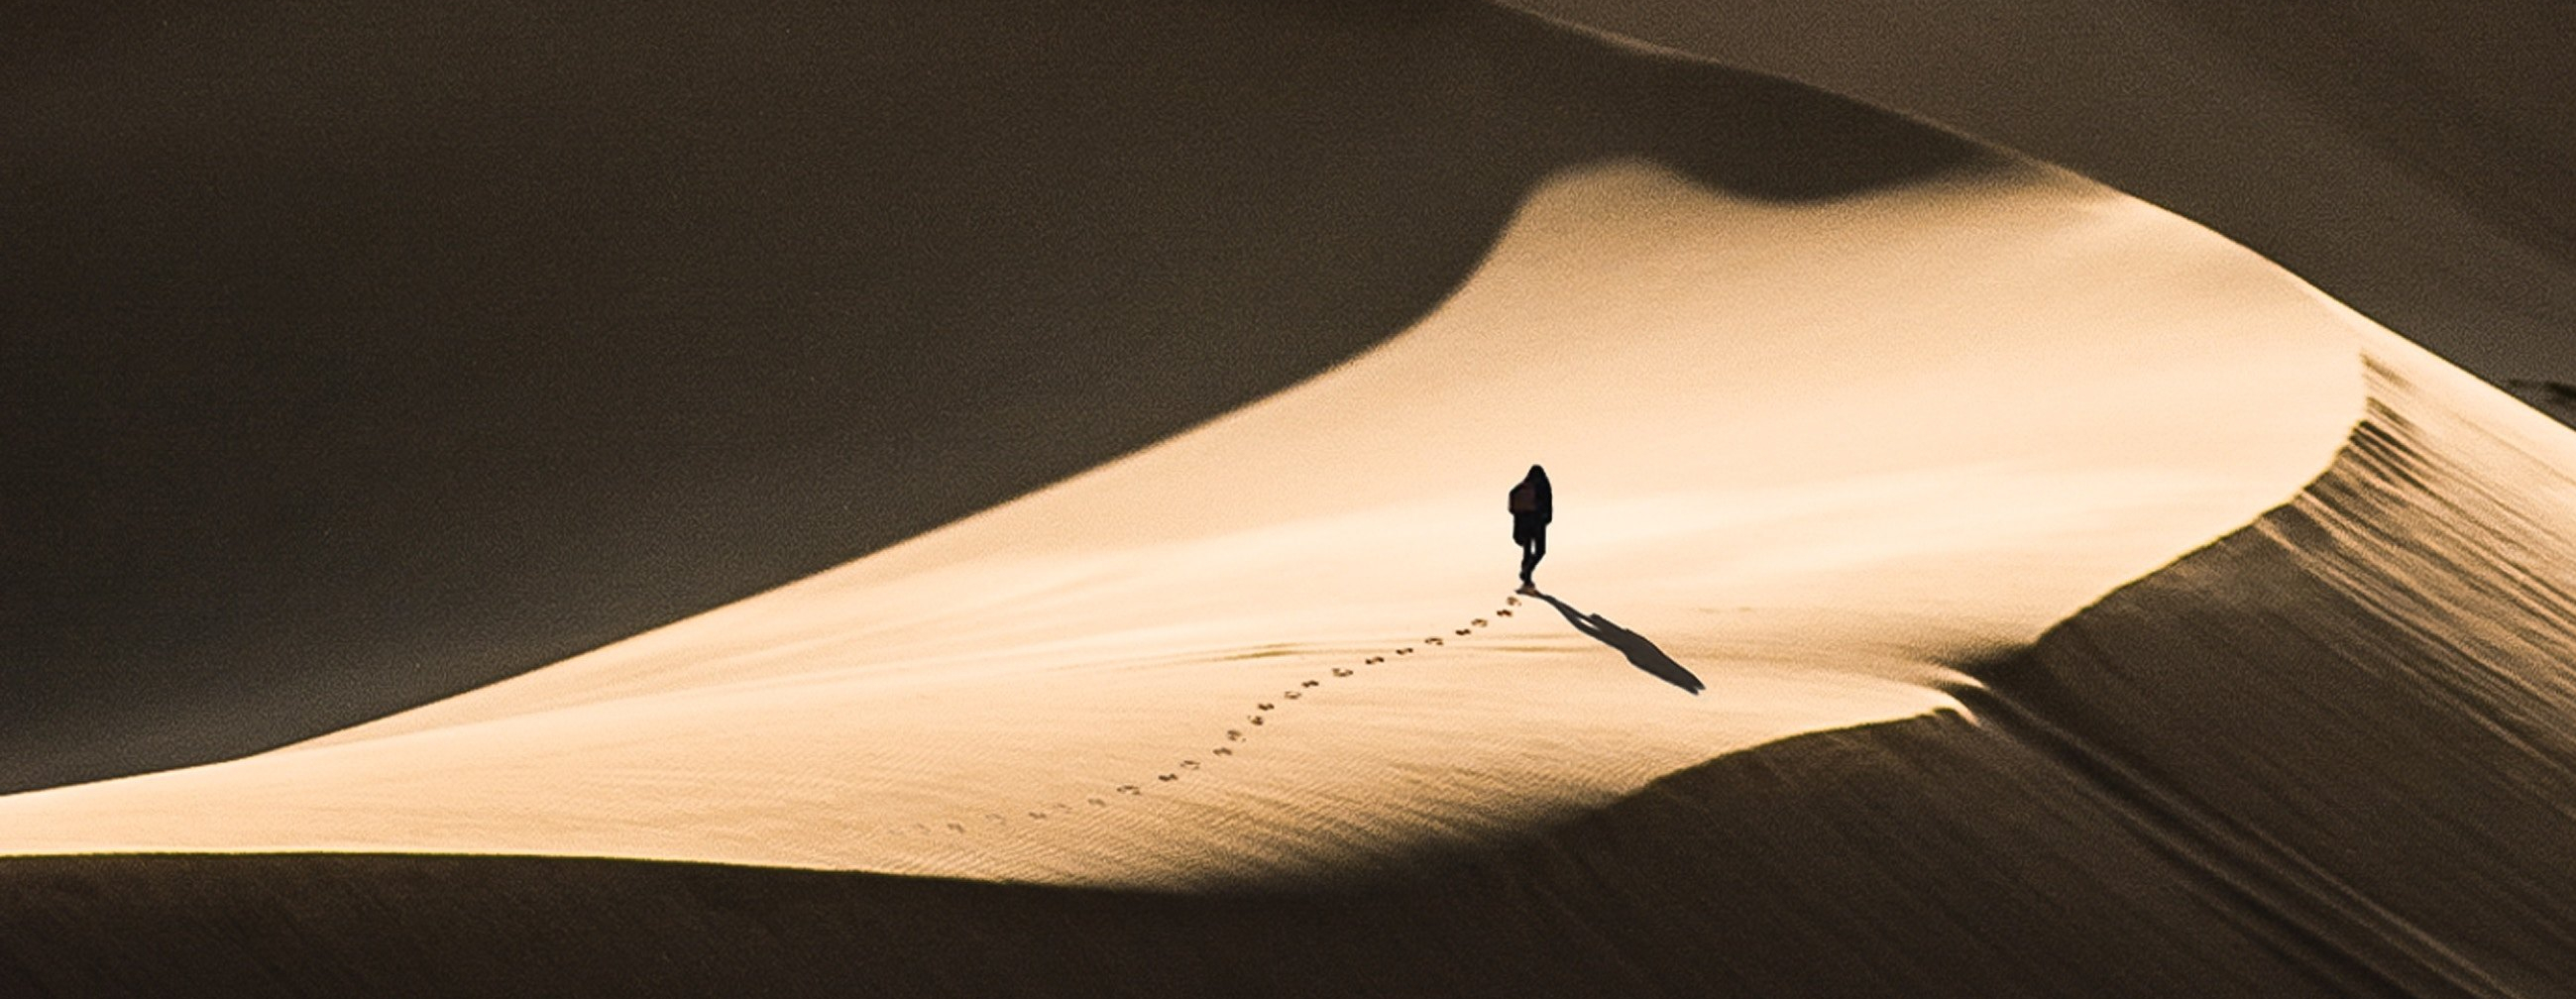 Man wlaking in the desert